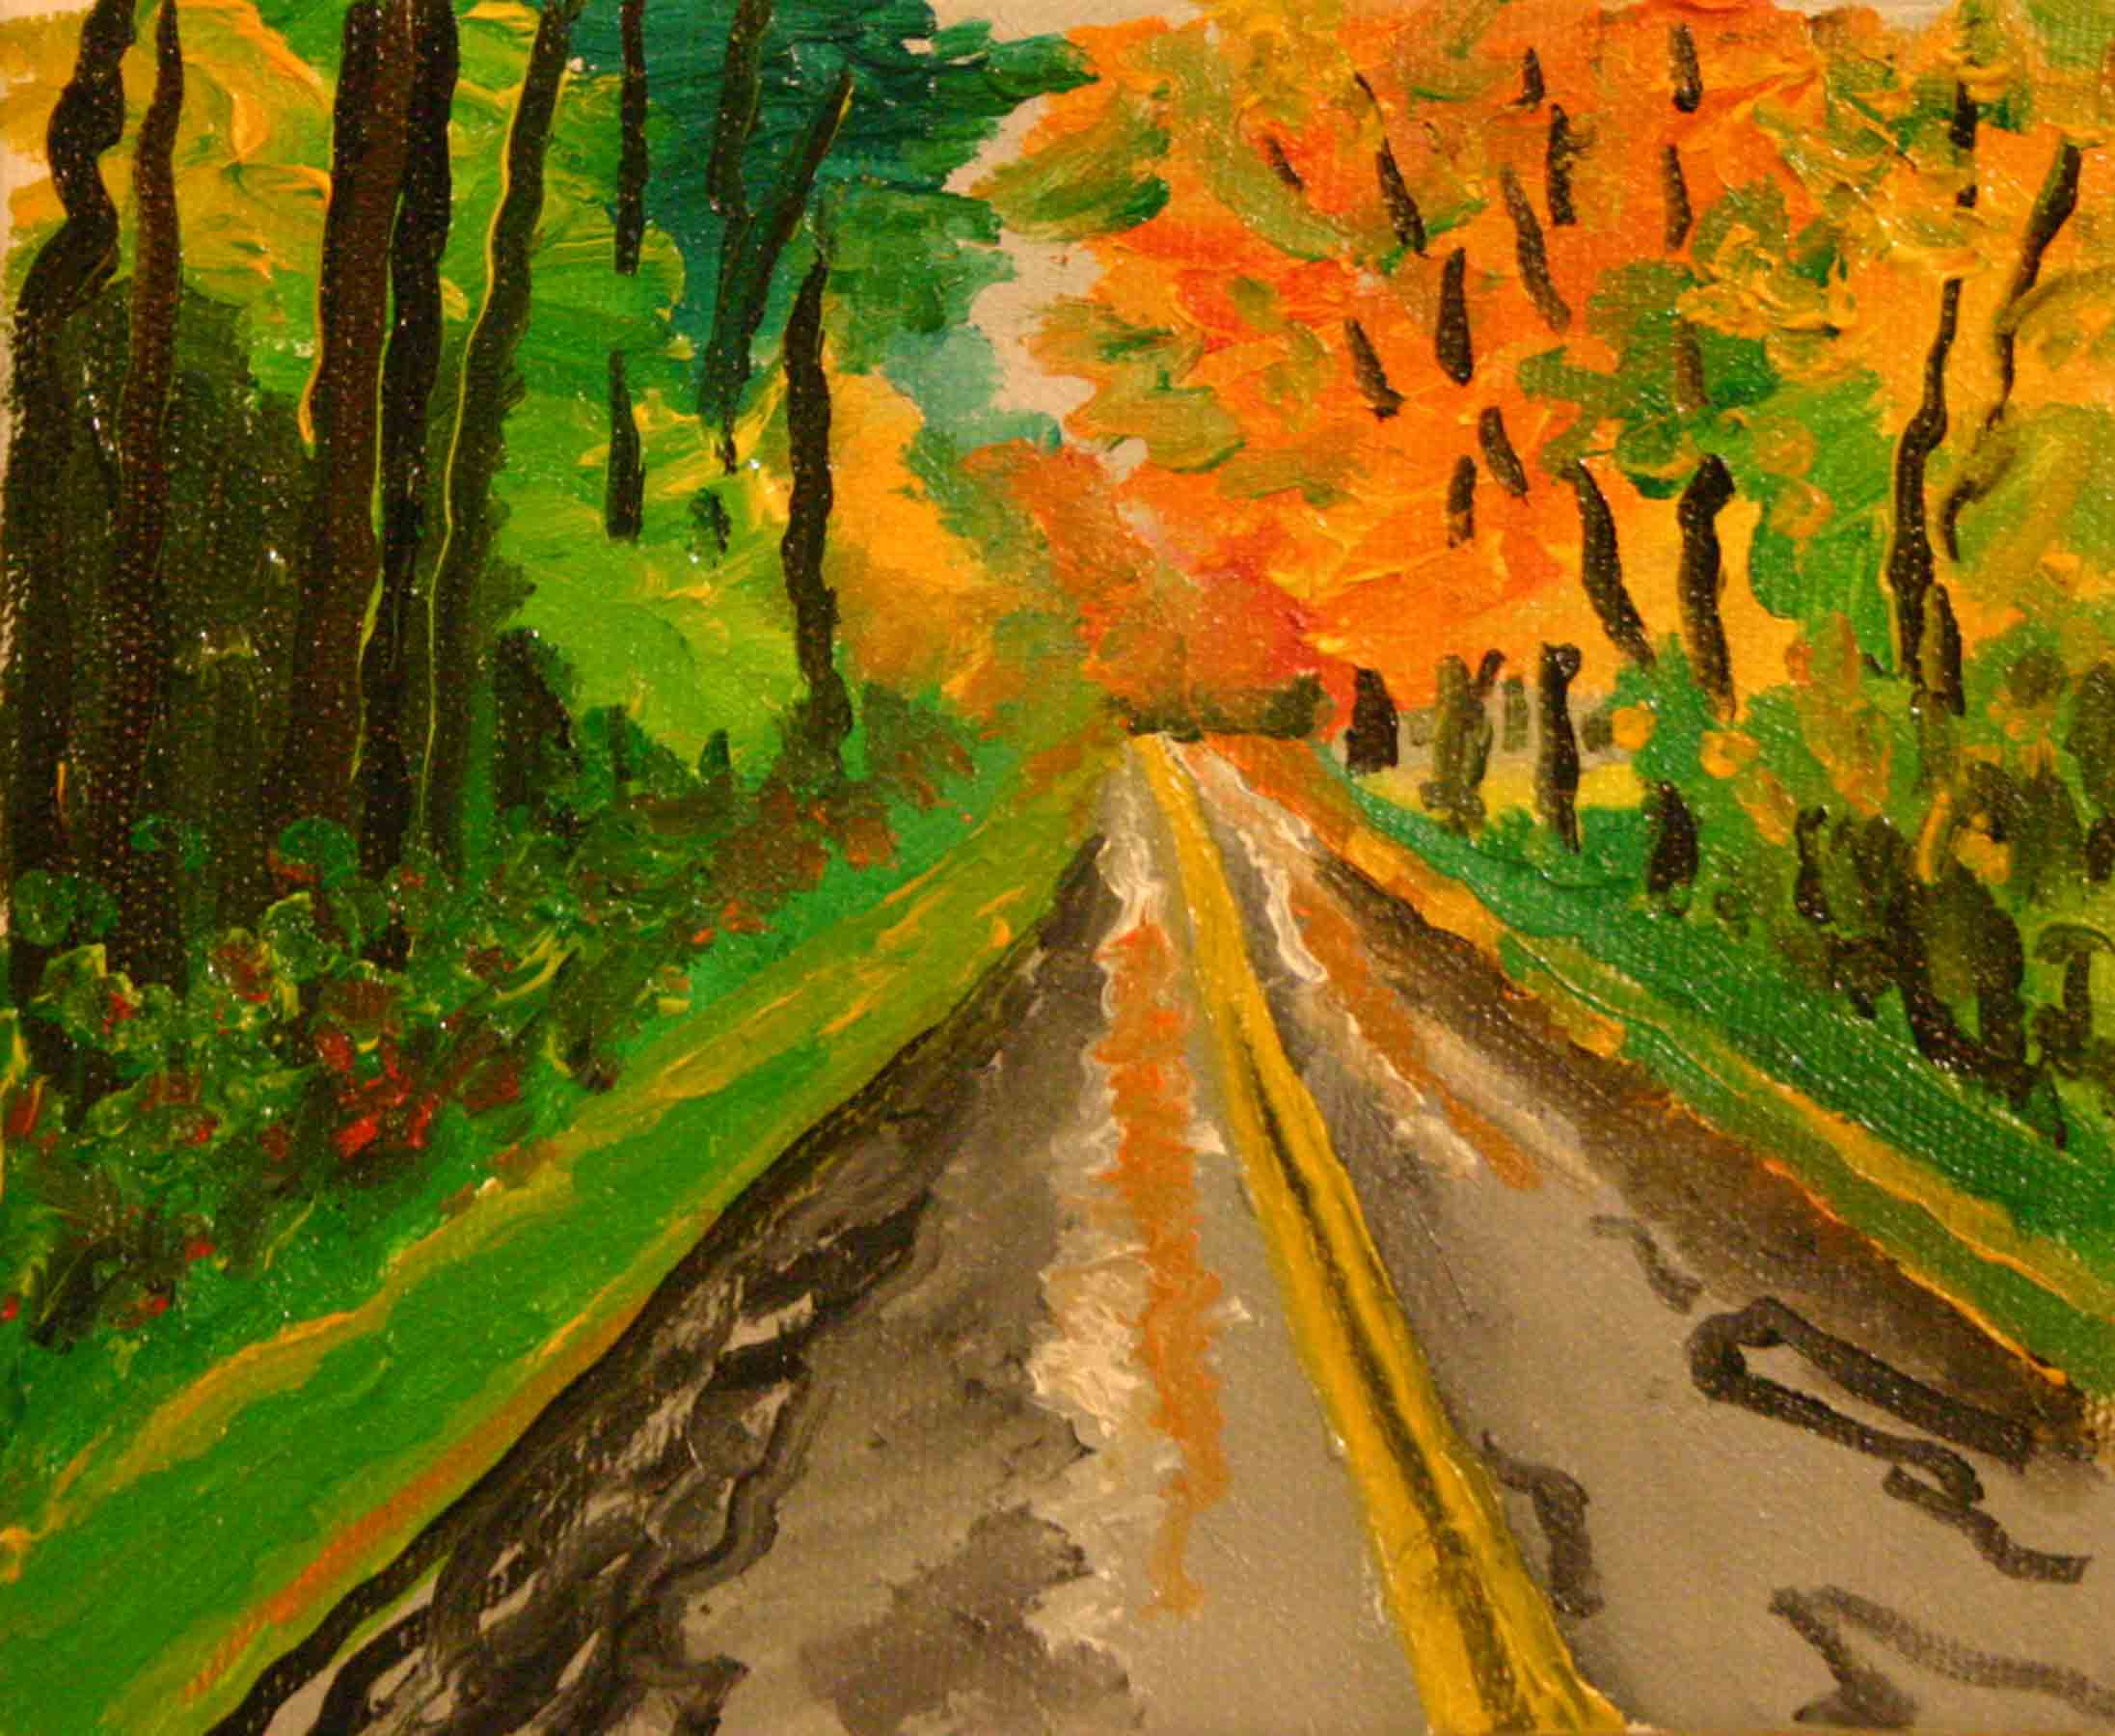 Back Road, Lee, Massachusetts  oil on canvas 5 x 6